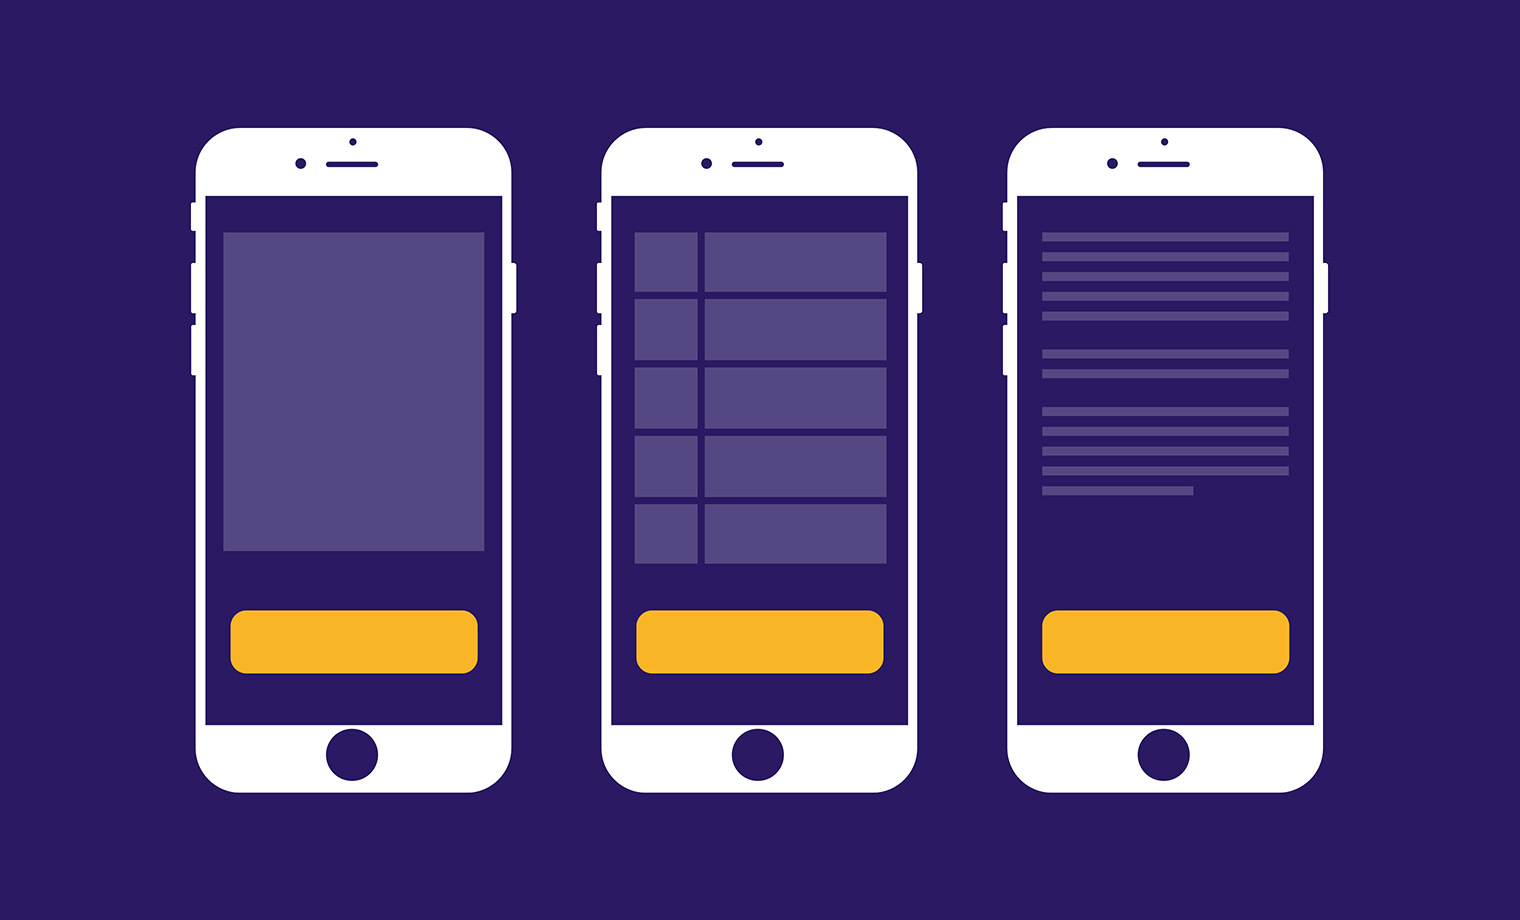 Blue Flame Thinking Blog Header Mobile User Experiences and Best Practices